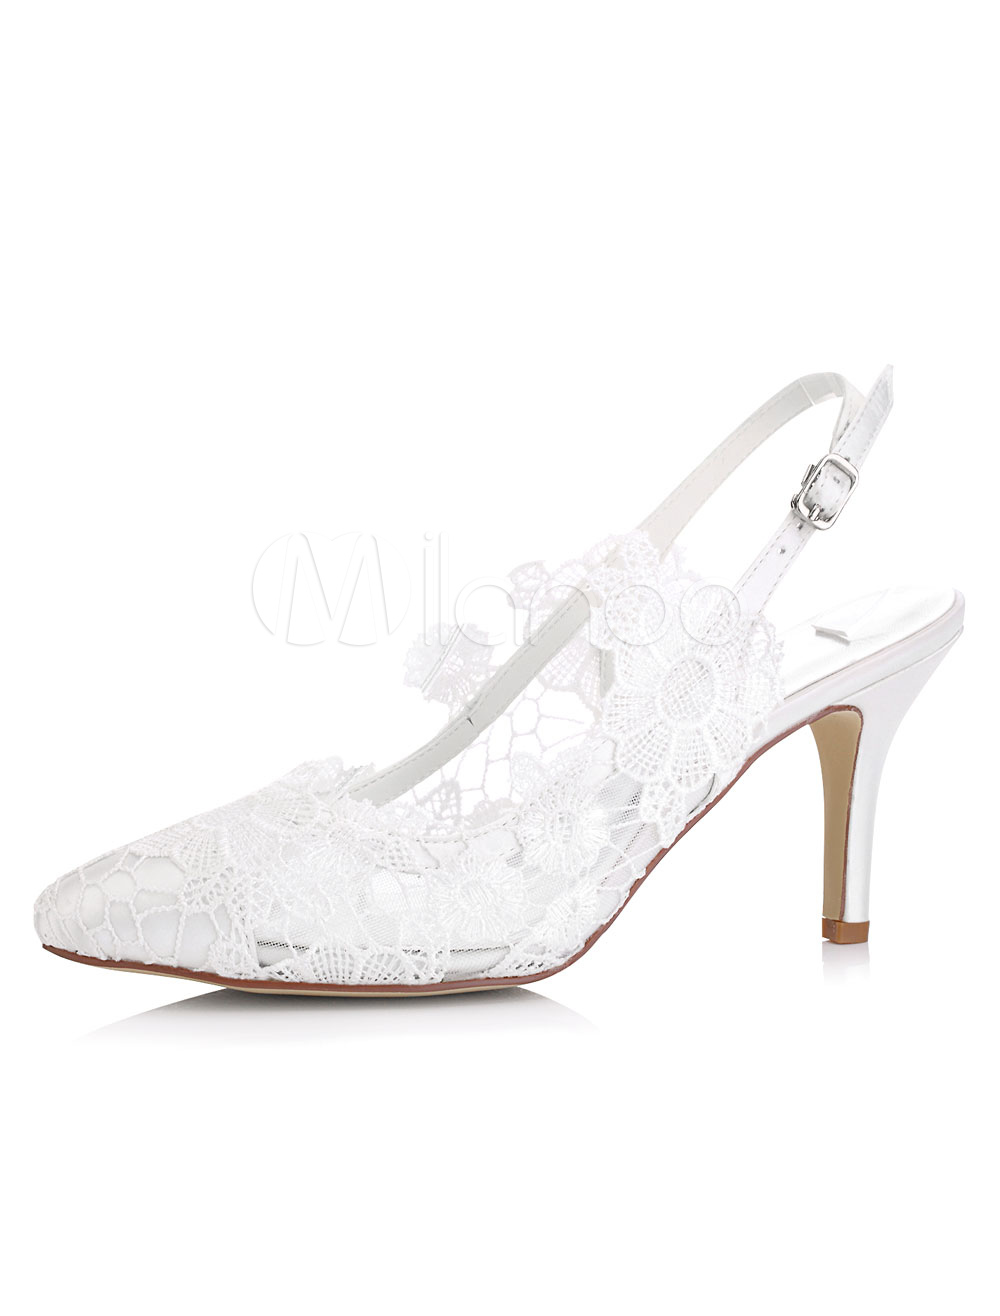 Lace Wedding Shoes.Lace Wedding Shoes Kitten Heel Pointed Toe Flower Satin Bridal Shoes